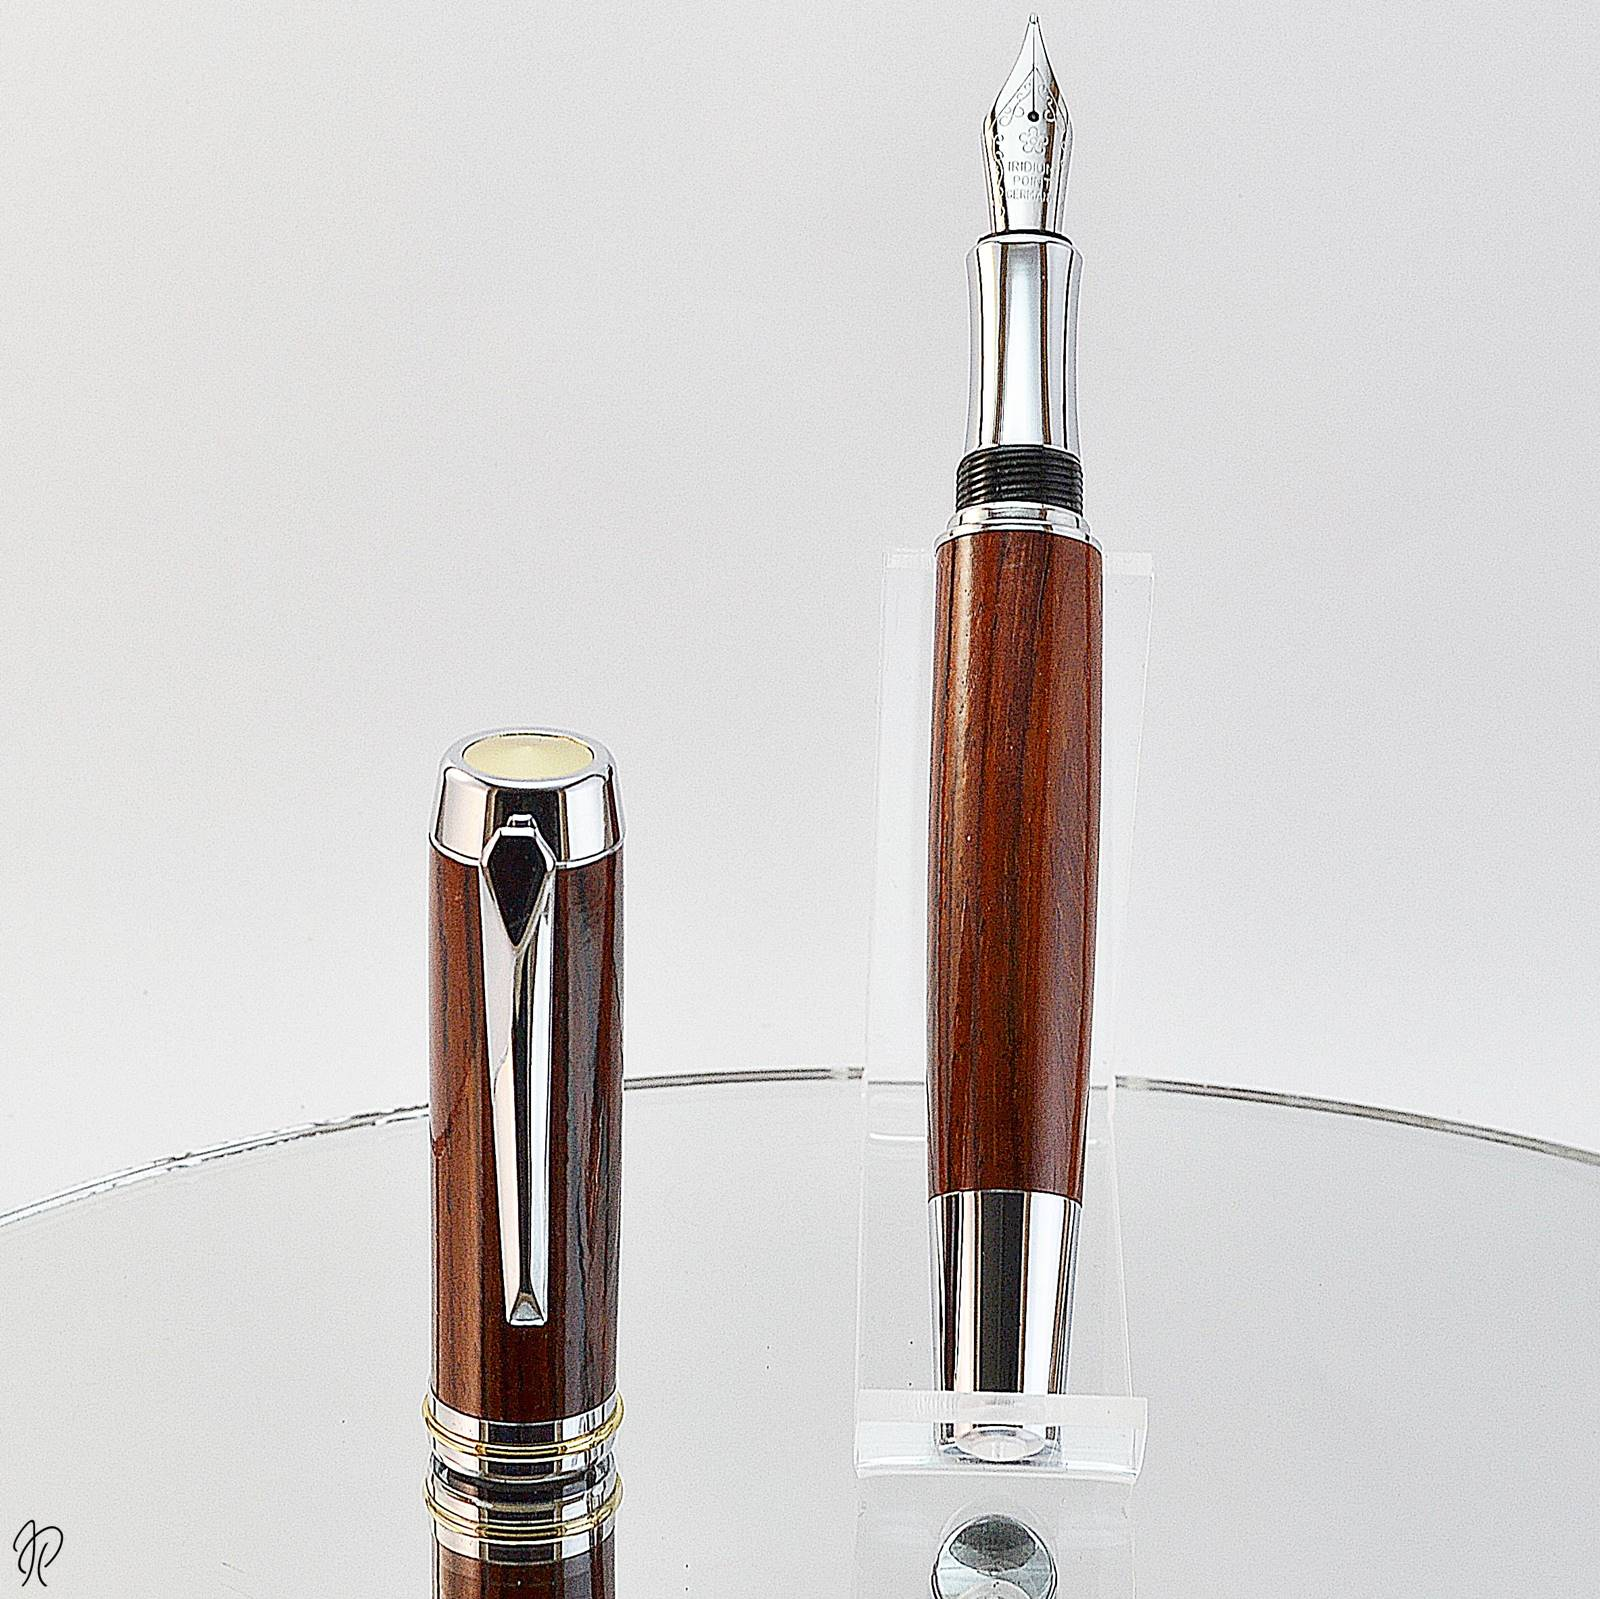 stunning wooden fountain pen deluxe model by irish pens